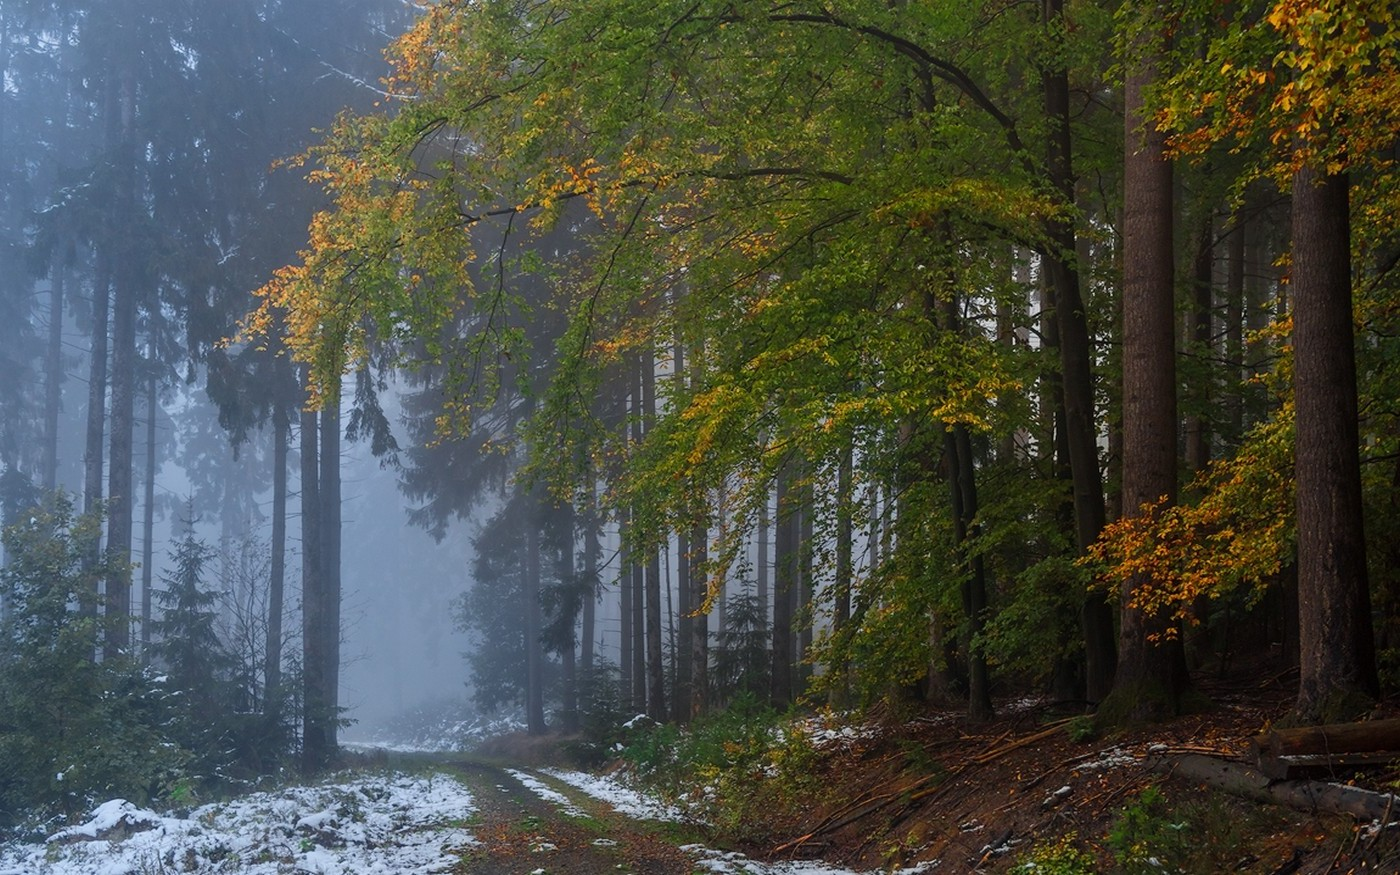 Fall Wallpaper Backgrounds Desktop Nature Landscape Forest Fall Mist Snow Path Dirt